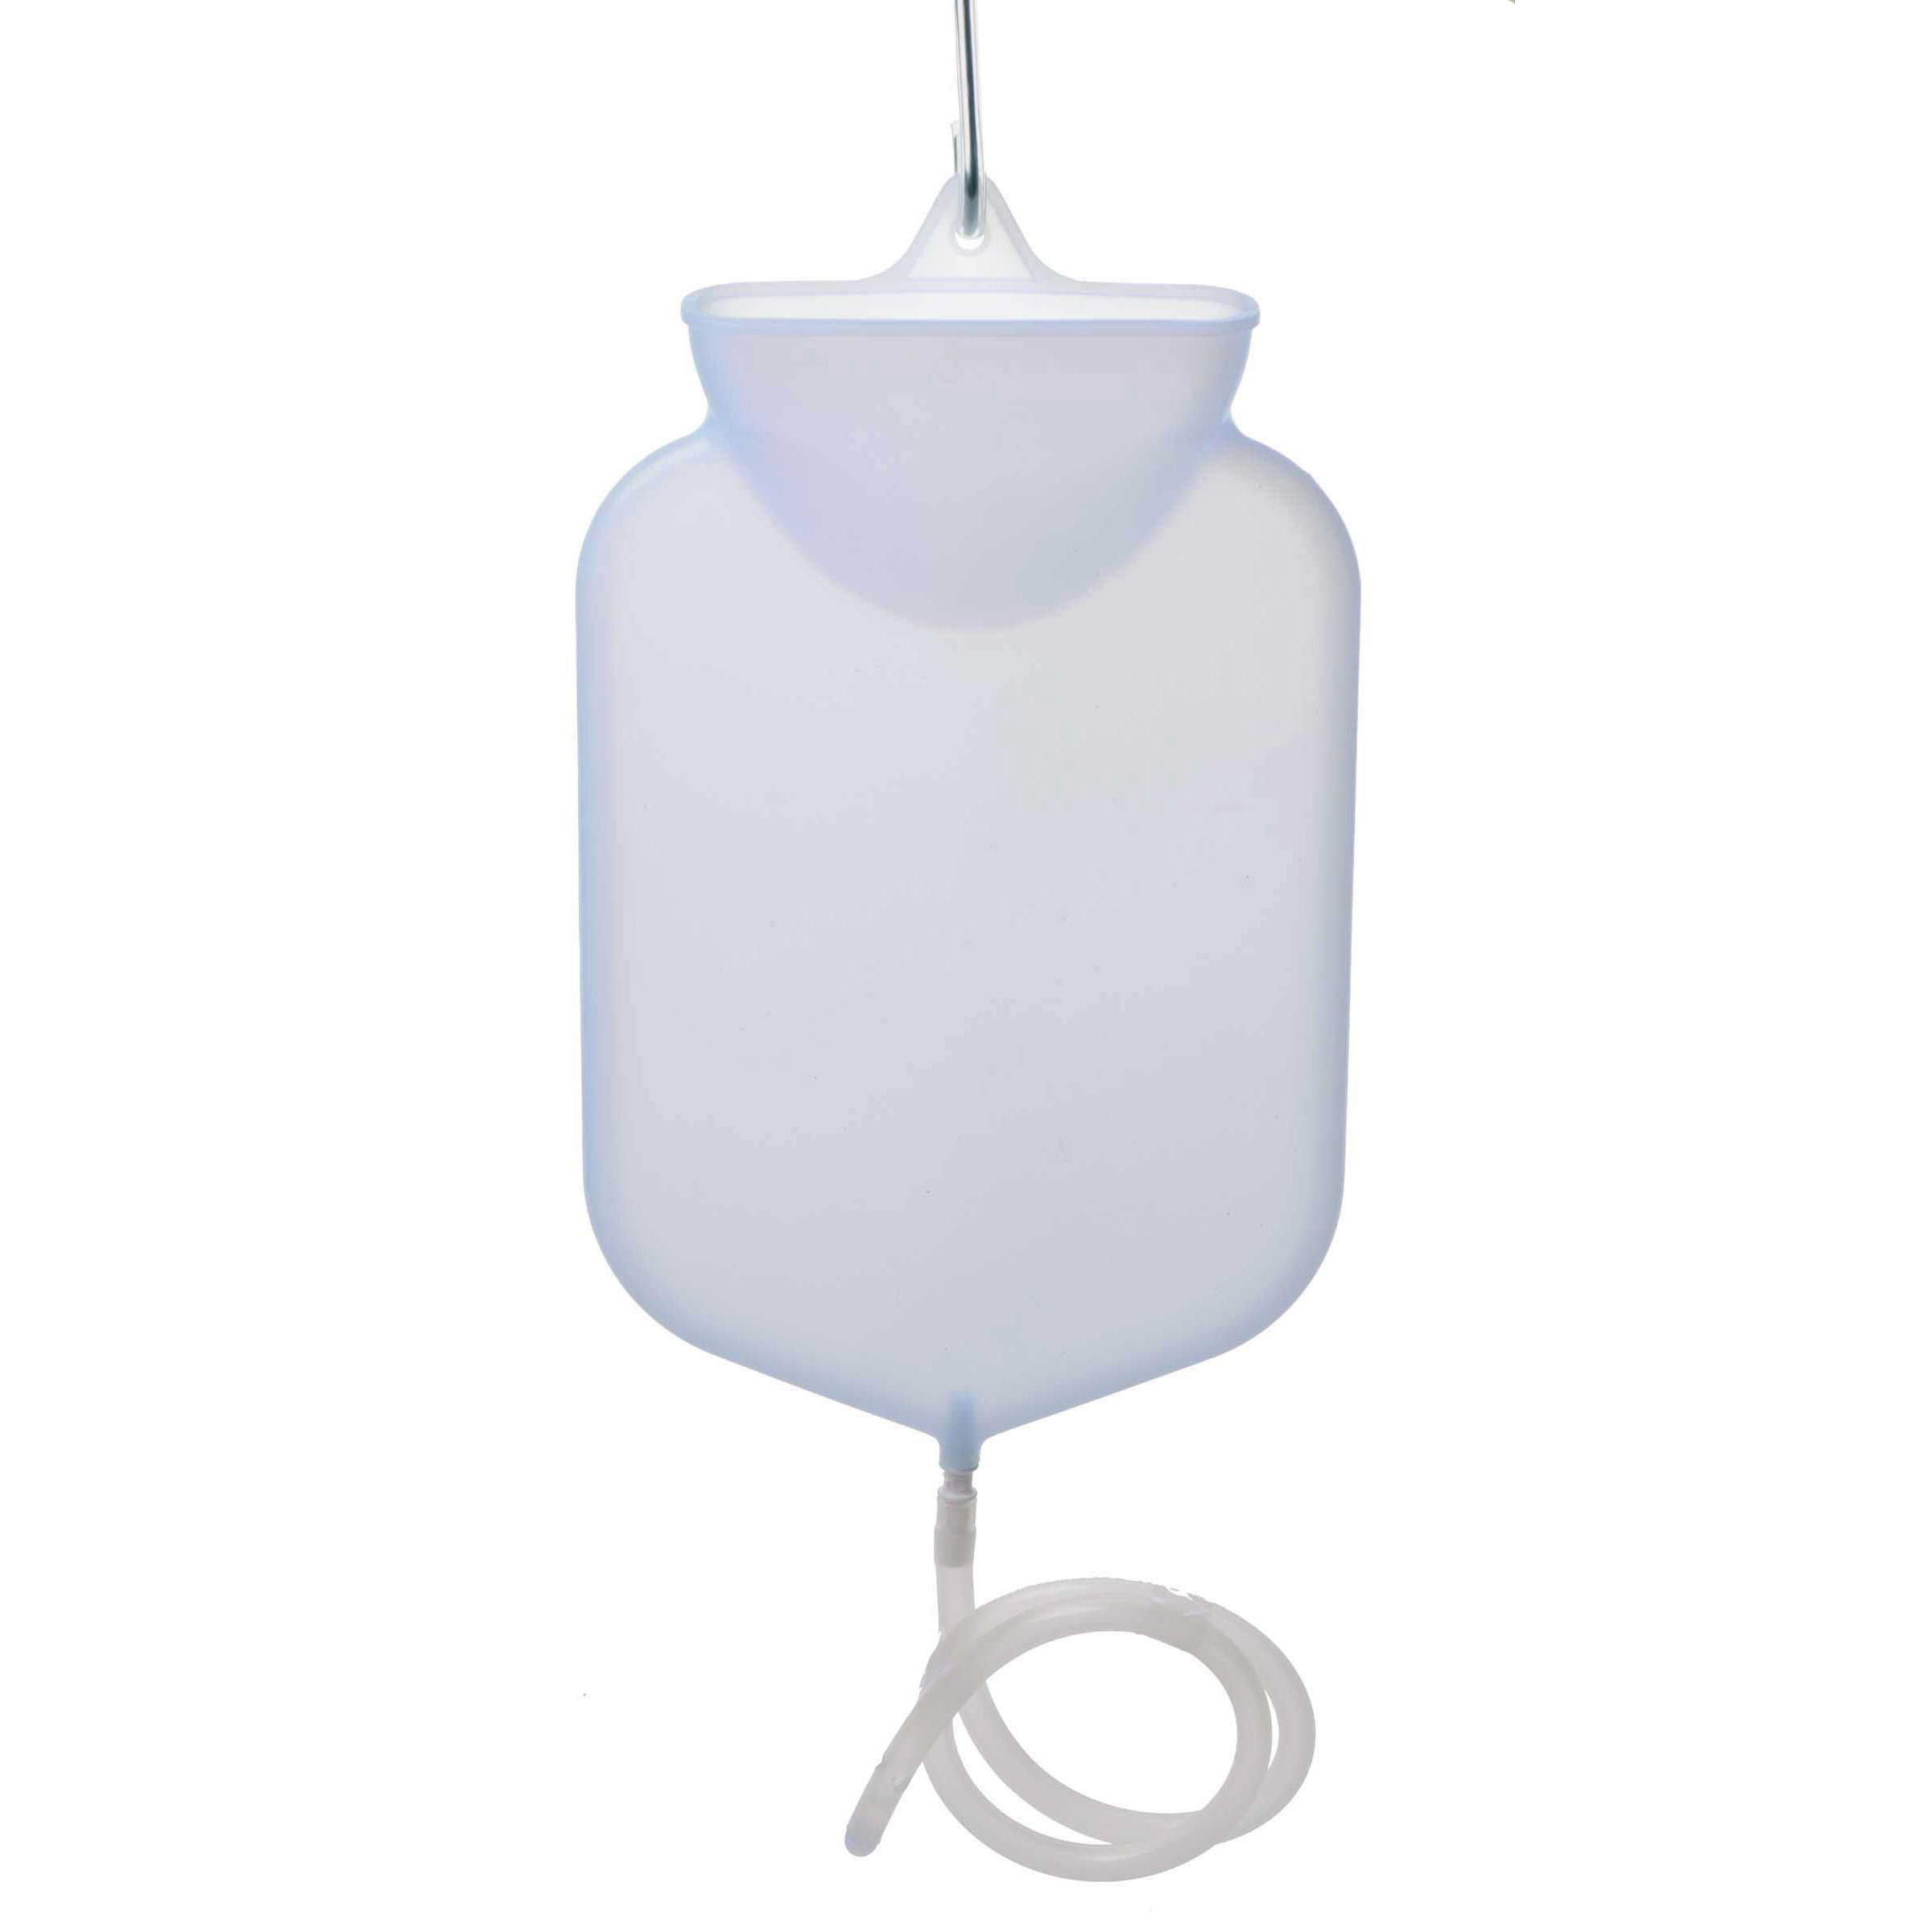 2.5 Quart Silicone Open Flow Top Douche and Enema Bag with Comfort Tip by Cleanstream